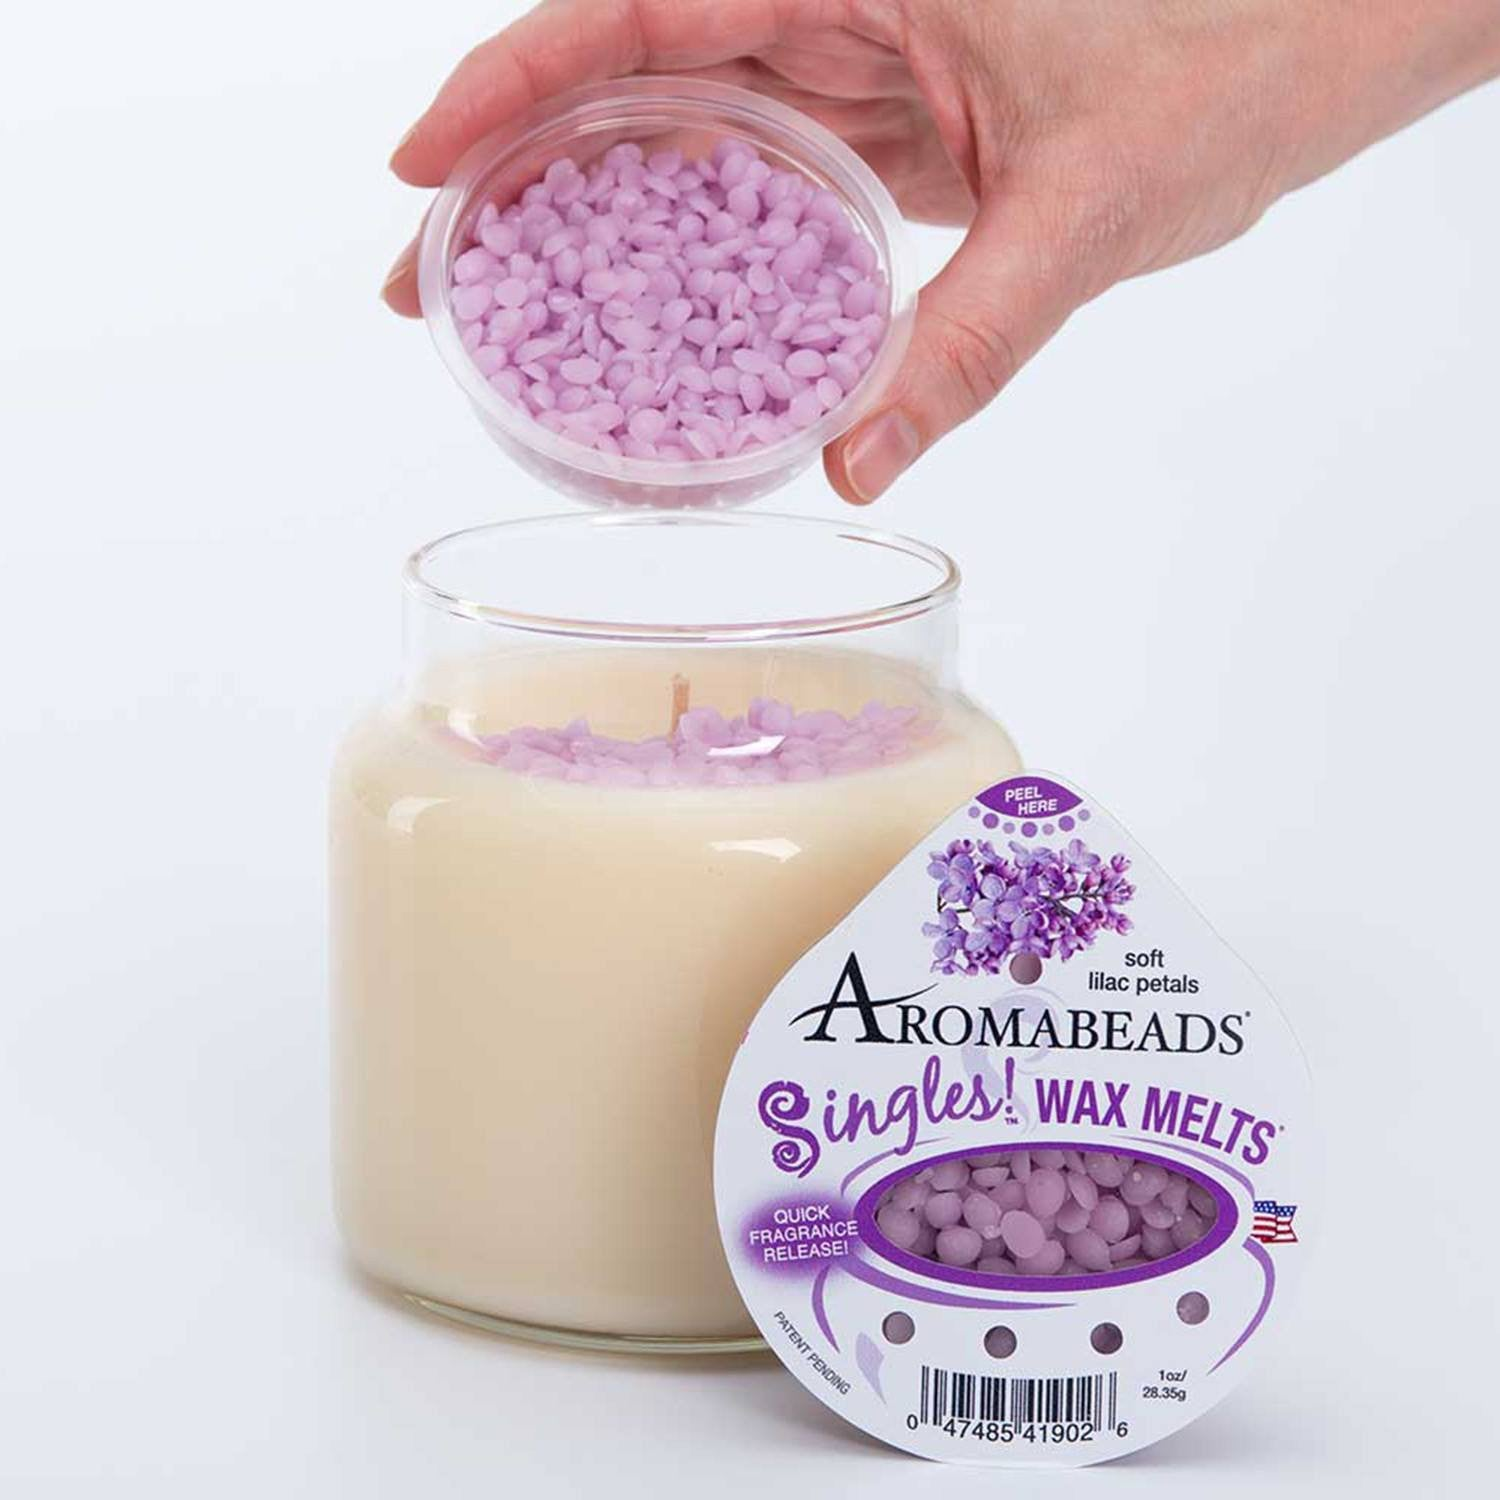 Aromabeads Singles Oatmeal Cookie Crunch Scented Wax Melts - Candlemart.com - 4